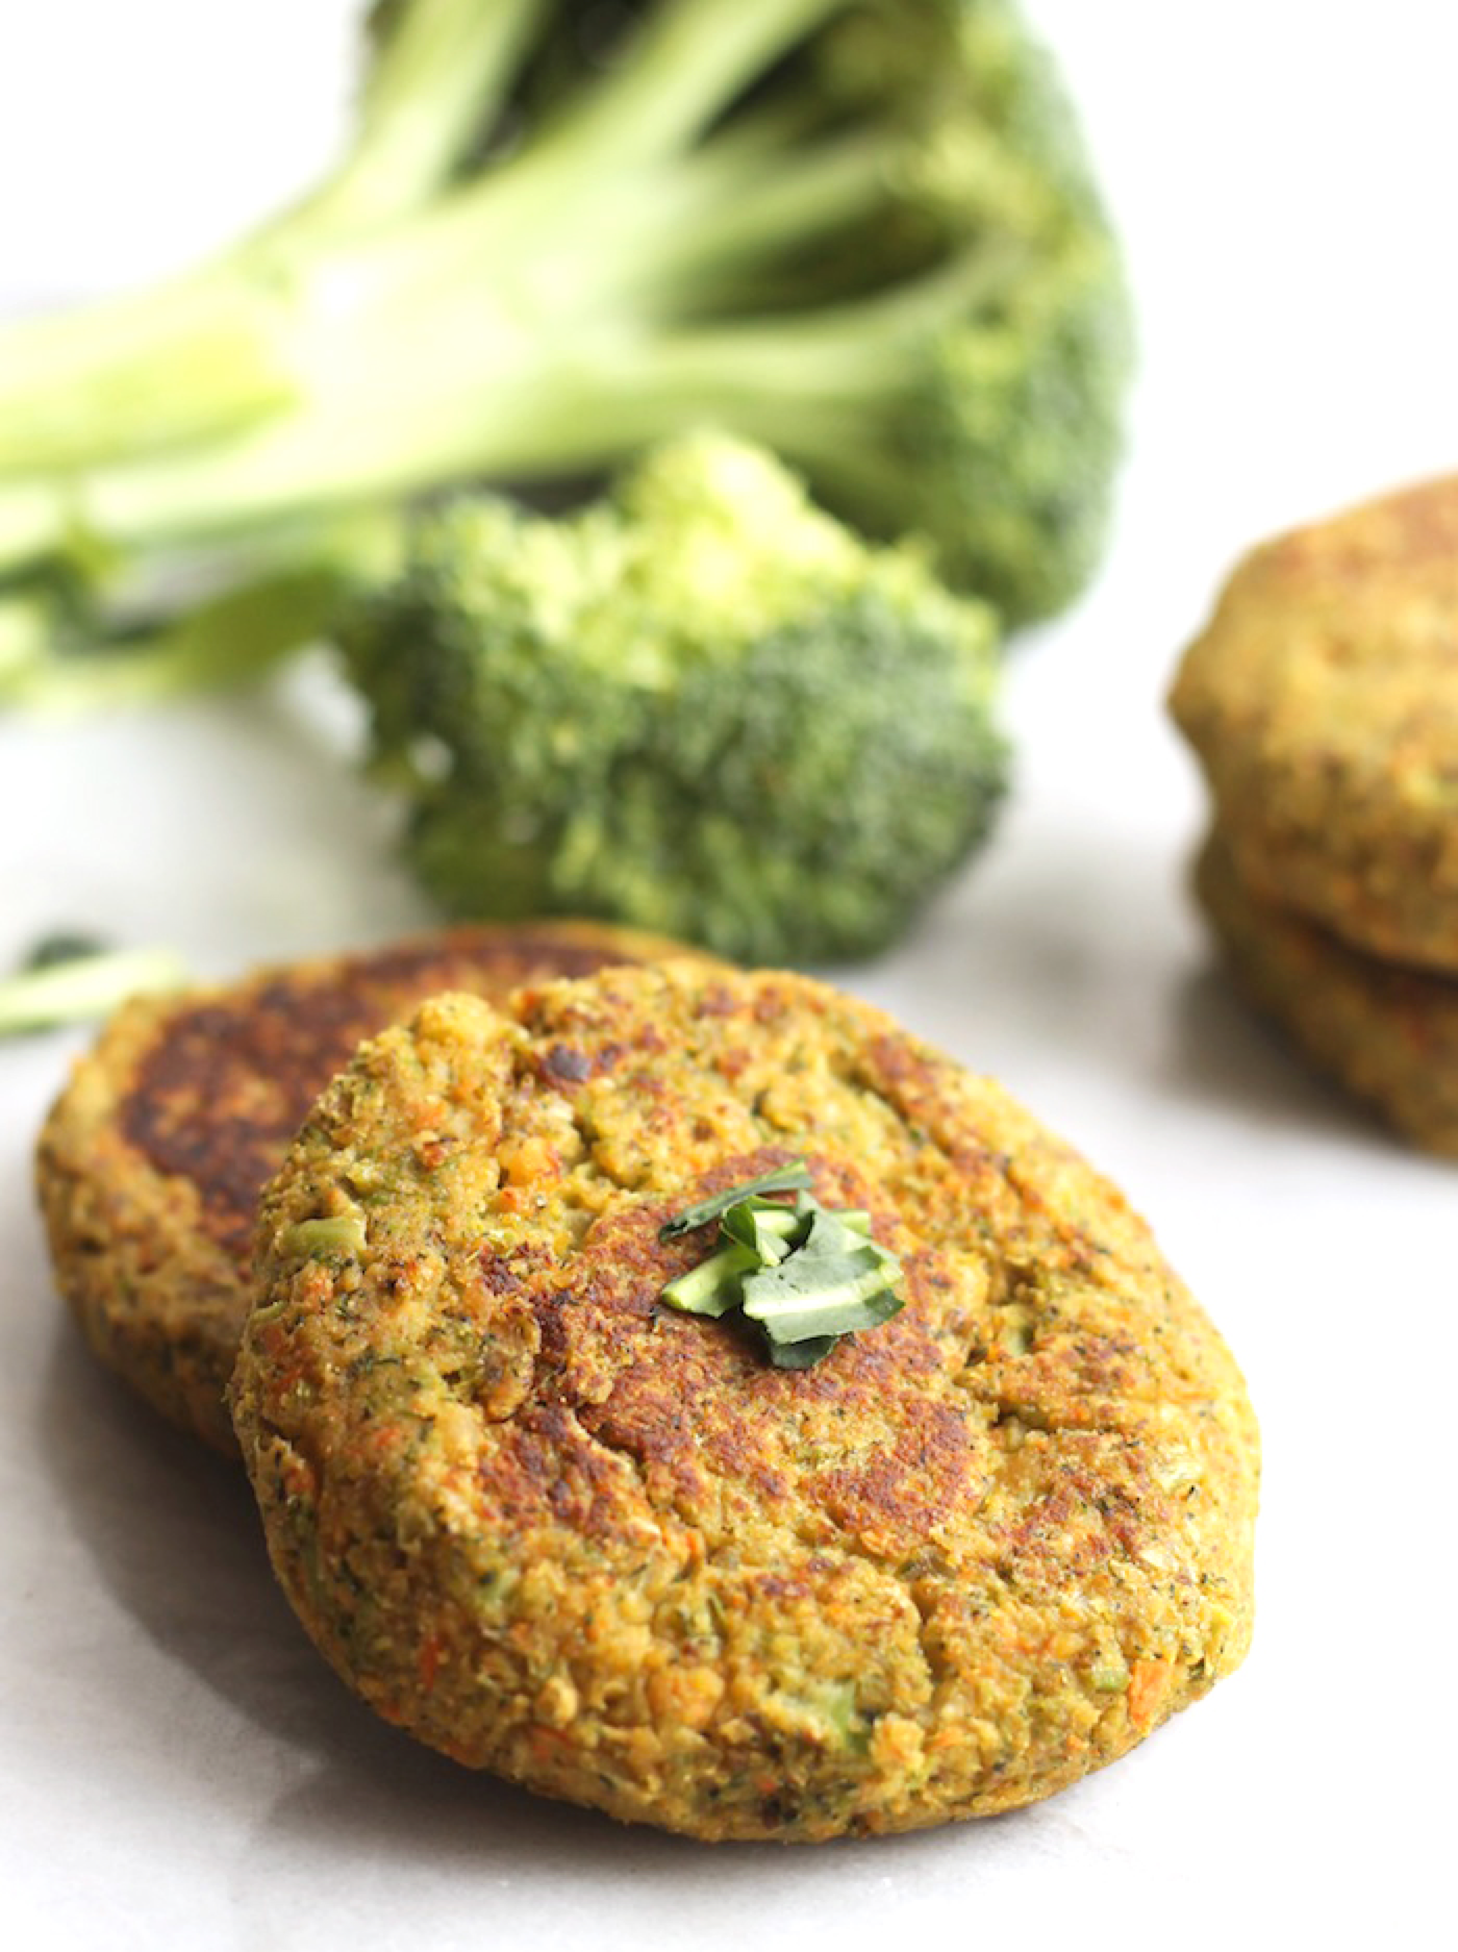 Organic Vegan Broccoli Burgers